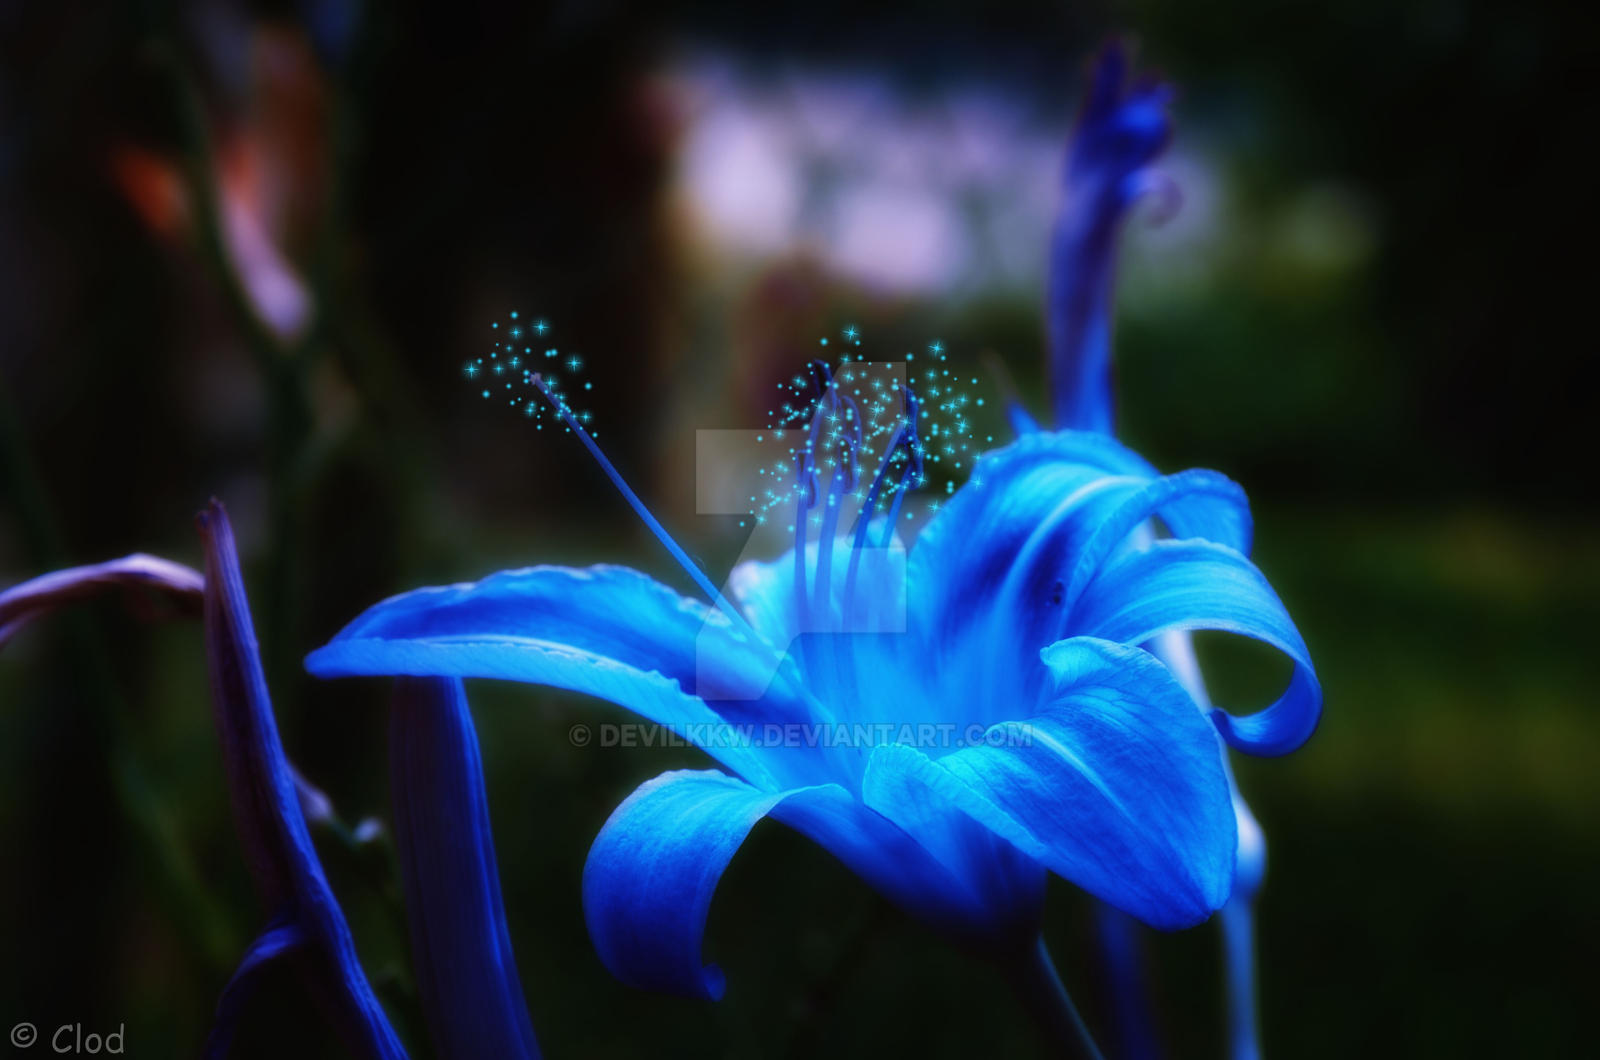 Magic flower by devilkkw on DeviantArt